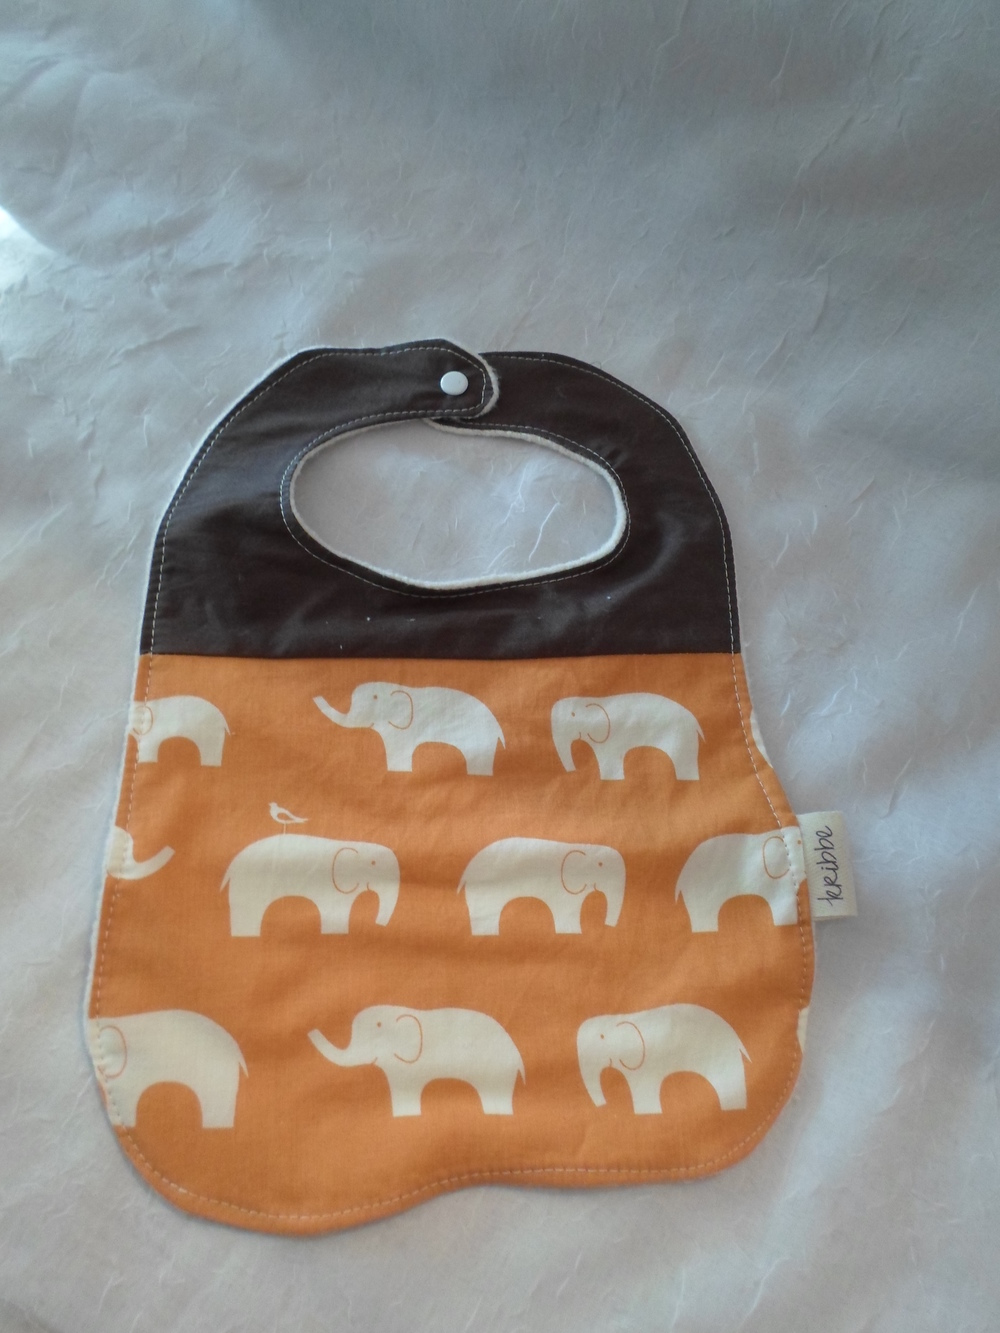 Locally Made Organic Bibs  $14-$39 Wants 1+